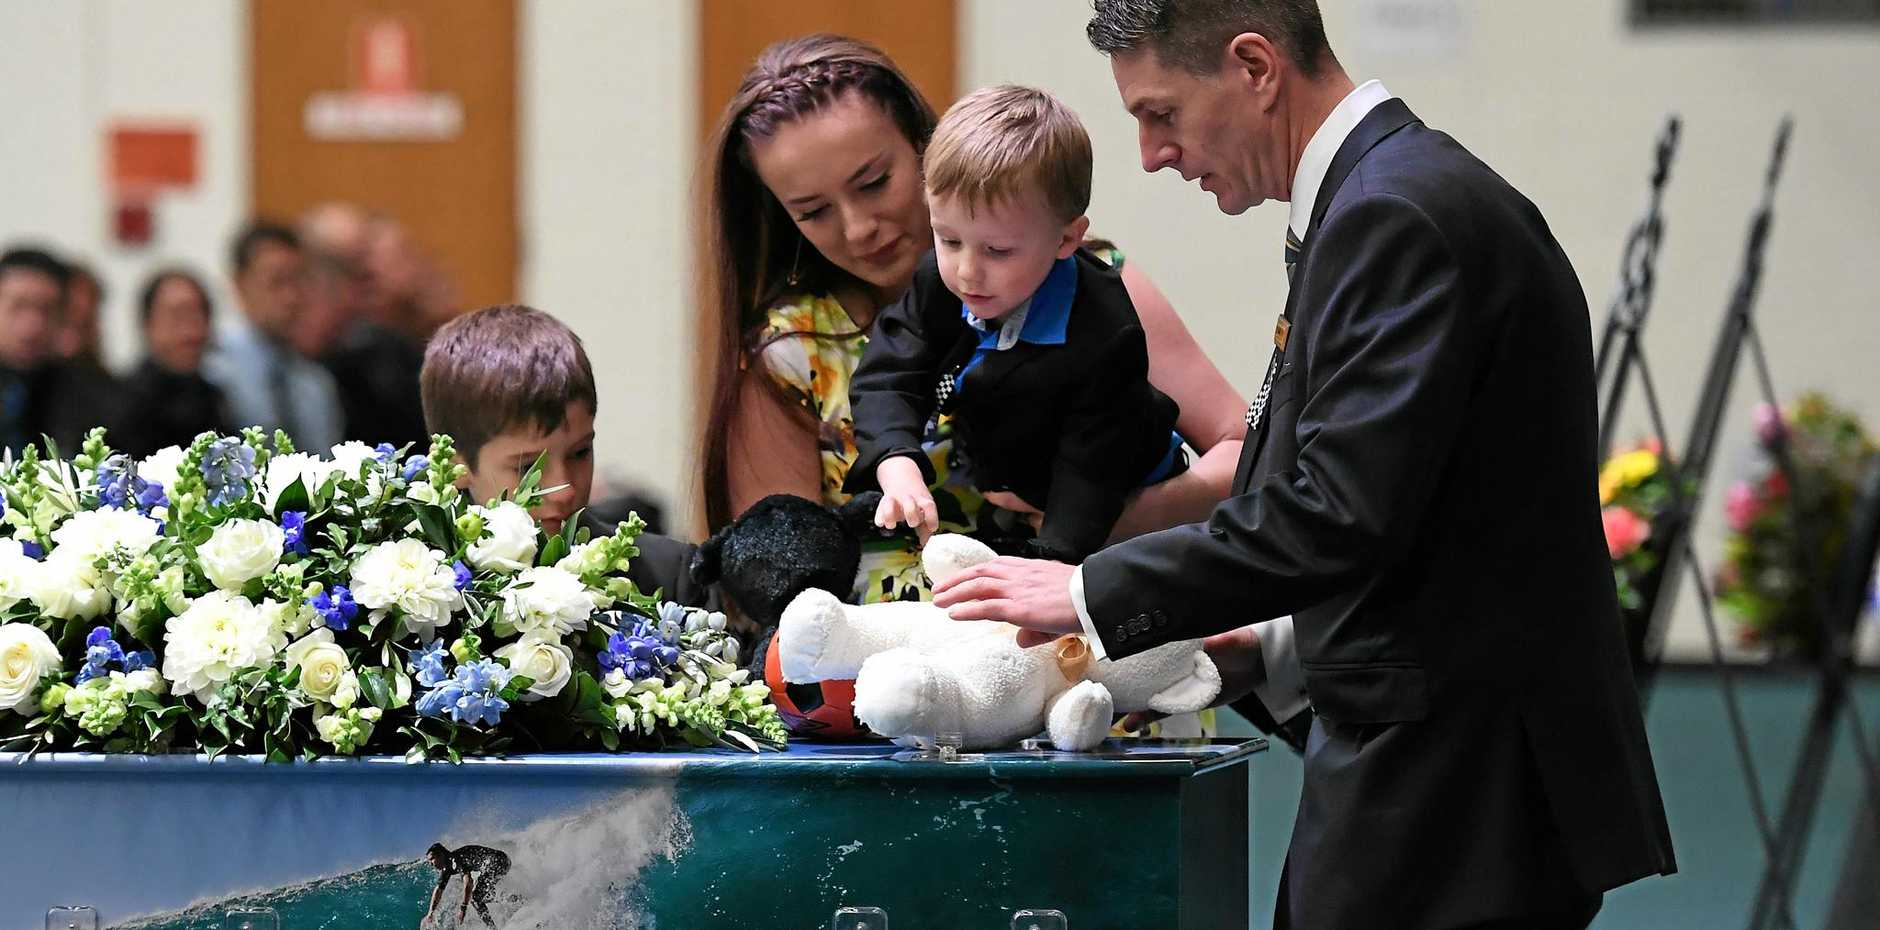 Senior Constable Brett Forte's children (2nd right to left) Sam, Emma and Brodie place a teddy bear and other items on his casket during his funeral service in Toowoomba. (AAP Image/Dan Peled)